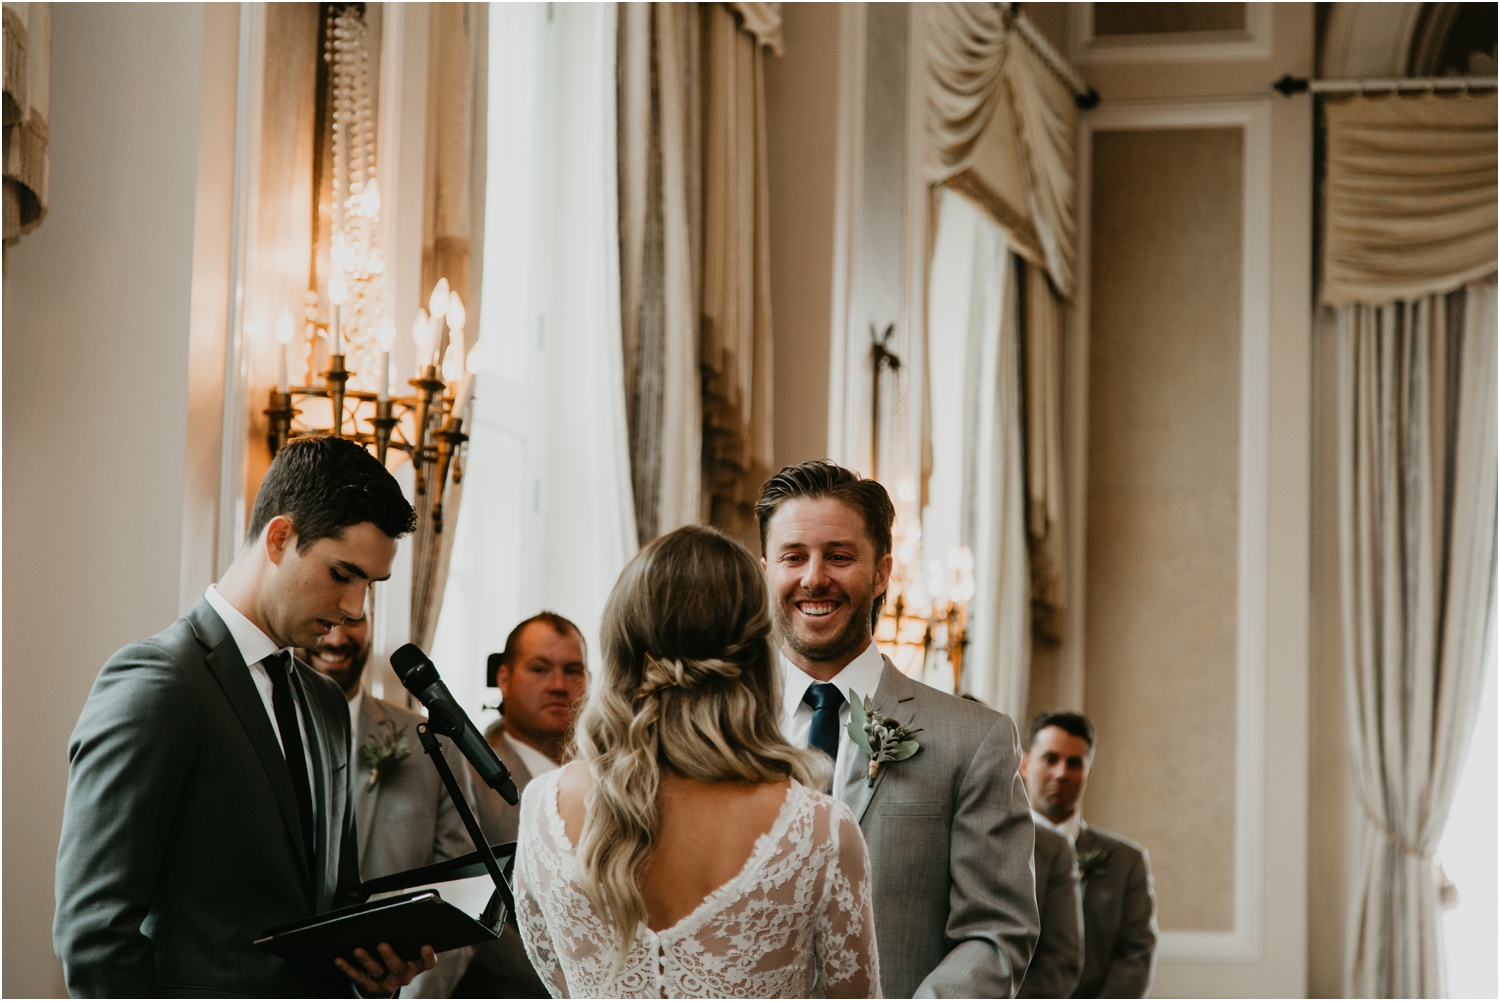 Courtney Jess Photography,Cranbrook wedding photographer,Fairmont Hotel Macdonald Wedding,